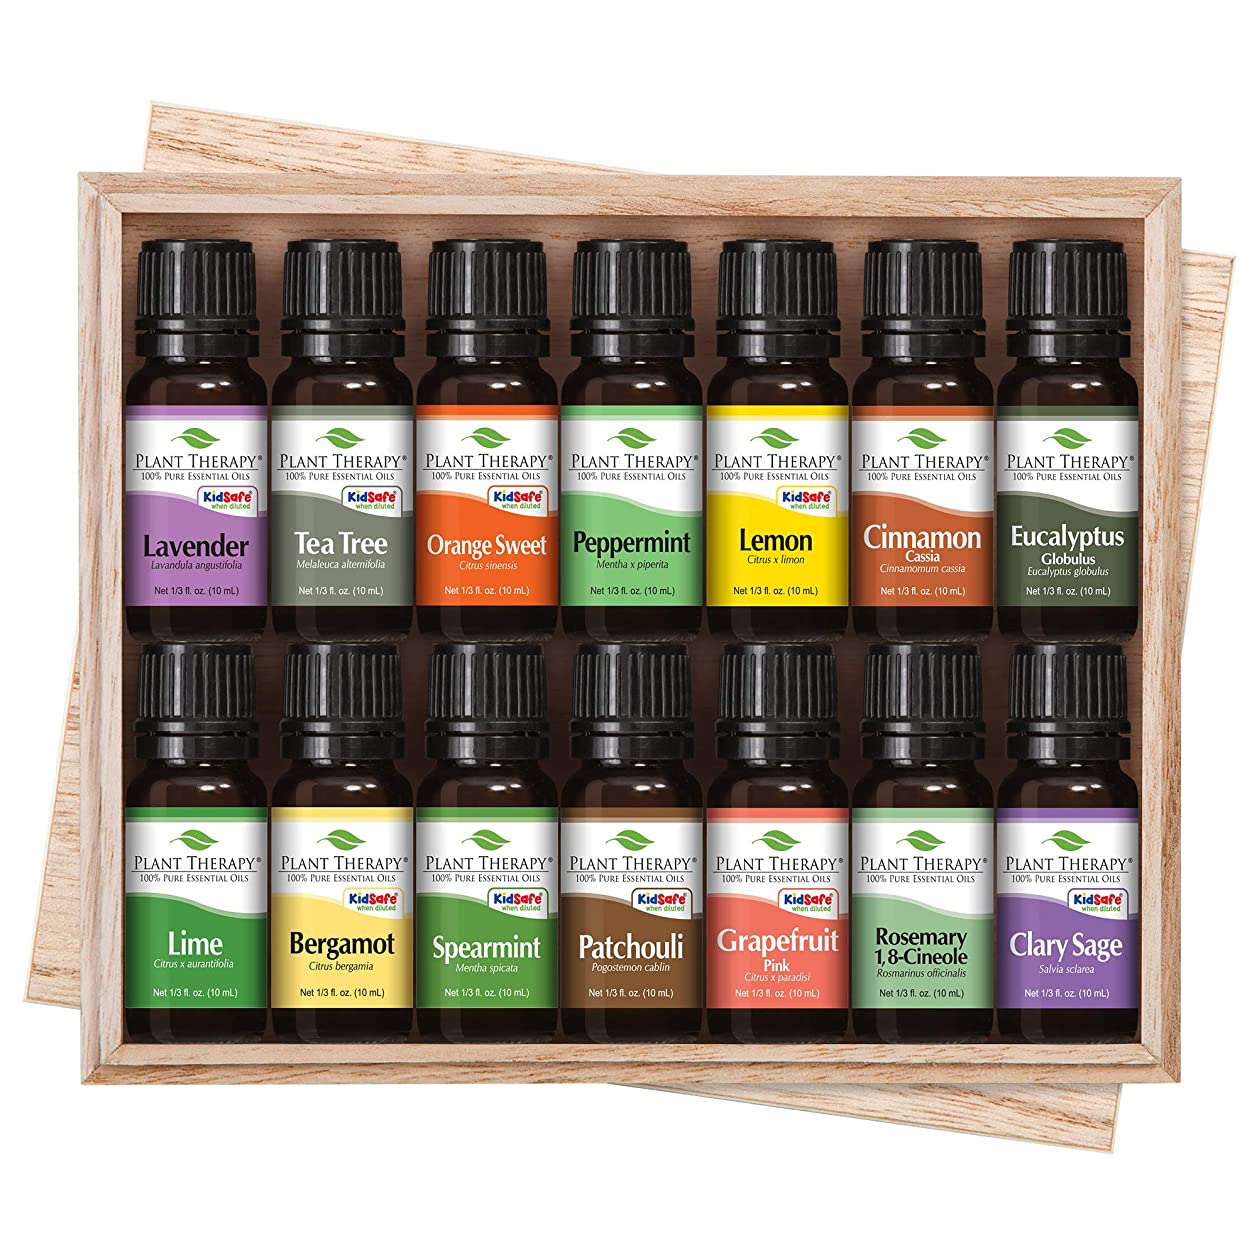 征服フォアタイプロイヤリティTop 14 Essential Oil Set. Includes 100% Pure, Therapeutic Grade Oils of Bergamot, Clary Sage, Cinnamon, Eucalyptus, Grapefruit, Lavender, Lemon, Lime, Patchouli, Peppermint, Rosemary, Spearmint, Orange & Tea Tree. 10 ml each. by Plant Therapy Essential Oils